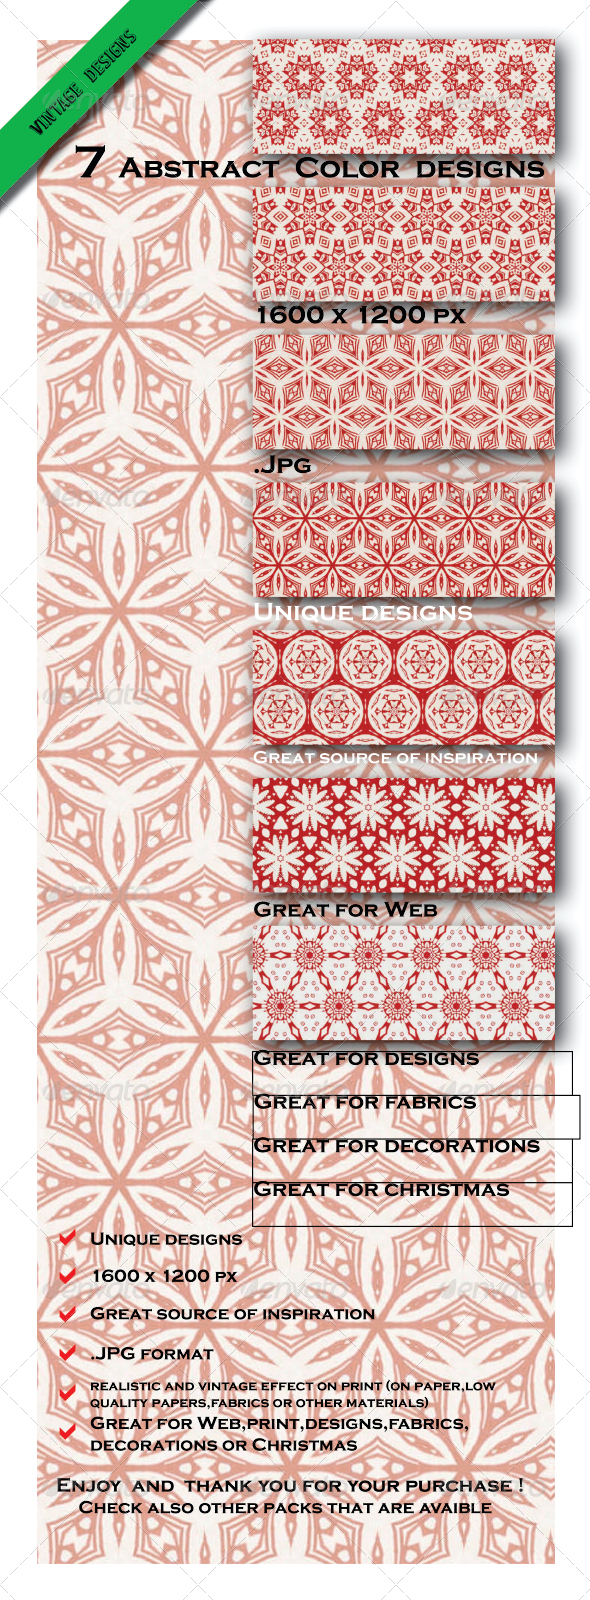 7 Abstract Gift Paper Designs